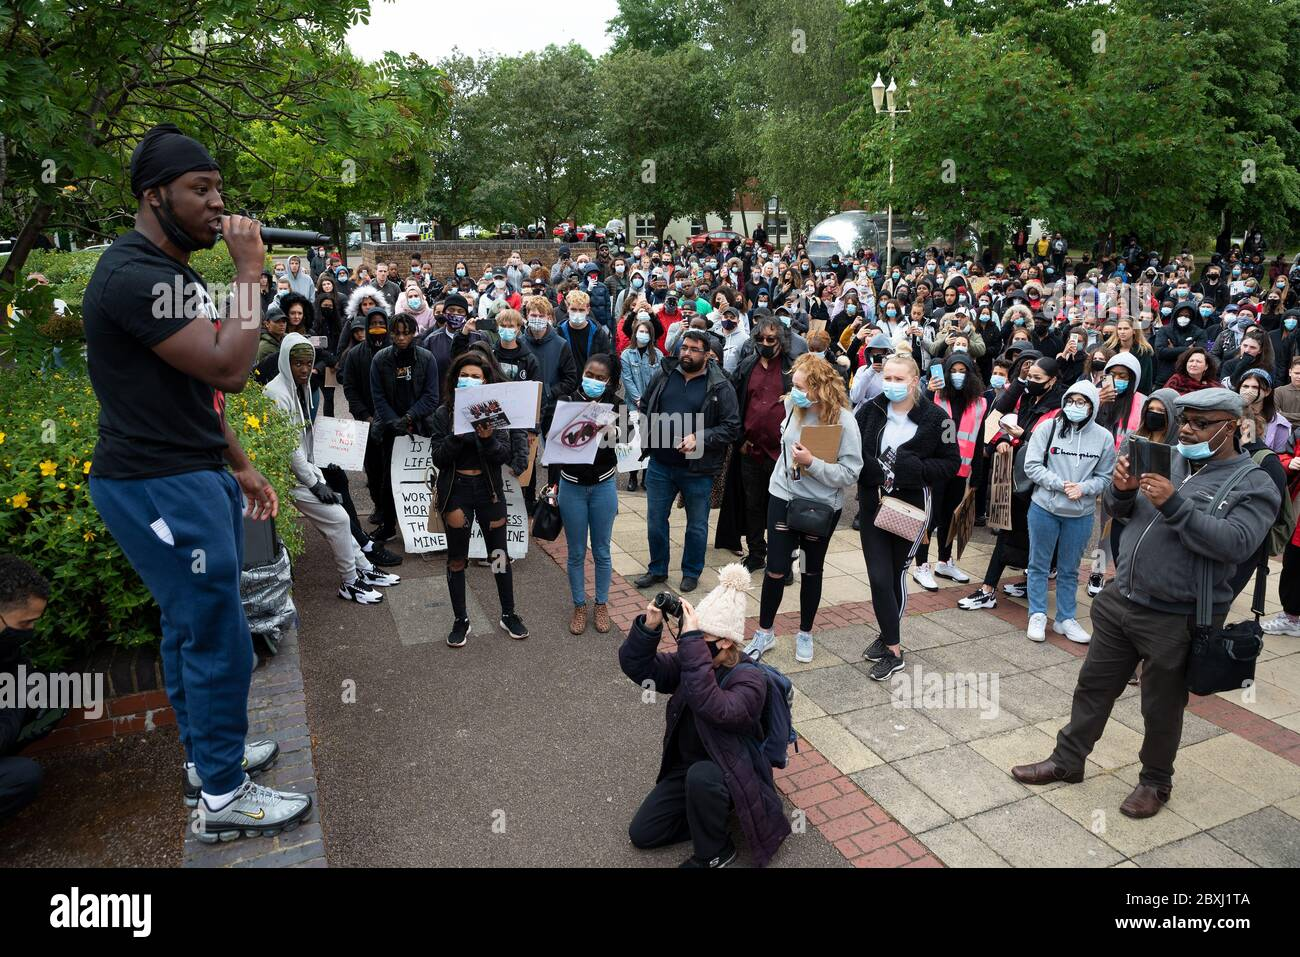 aylesbury-uk-6th-june-2020-aylesbury-black-lives-matter-march-in-response-to-the-recent-death-of-george-floyd-in-minneapolis-who-died-when-a-police-officer-continuously-knelt-on-his-neck-until-he-died-the-march-route-had-been-agreed-with-the-police-around-a-1000-demonstrators-marched-carrying-placards-and-chanting-the-march-started-from-watermead-and-finished-in-the-town-centre-the-march-was-organised-by-local-residents-amari-jamz-and-hannah-lewis-credit-stephen-bellalamy-2BXJ1TA.jpg